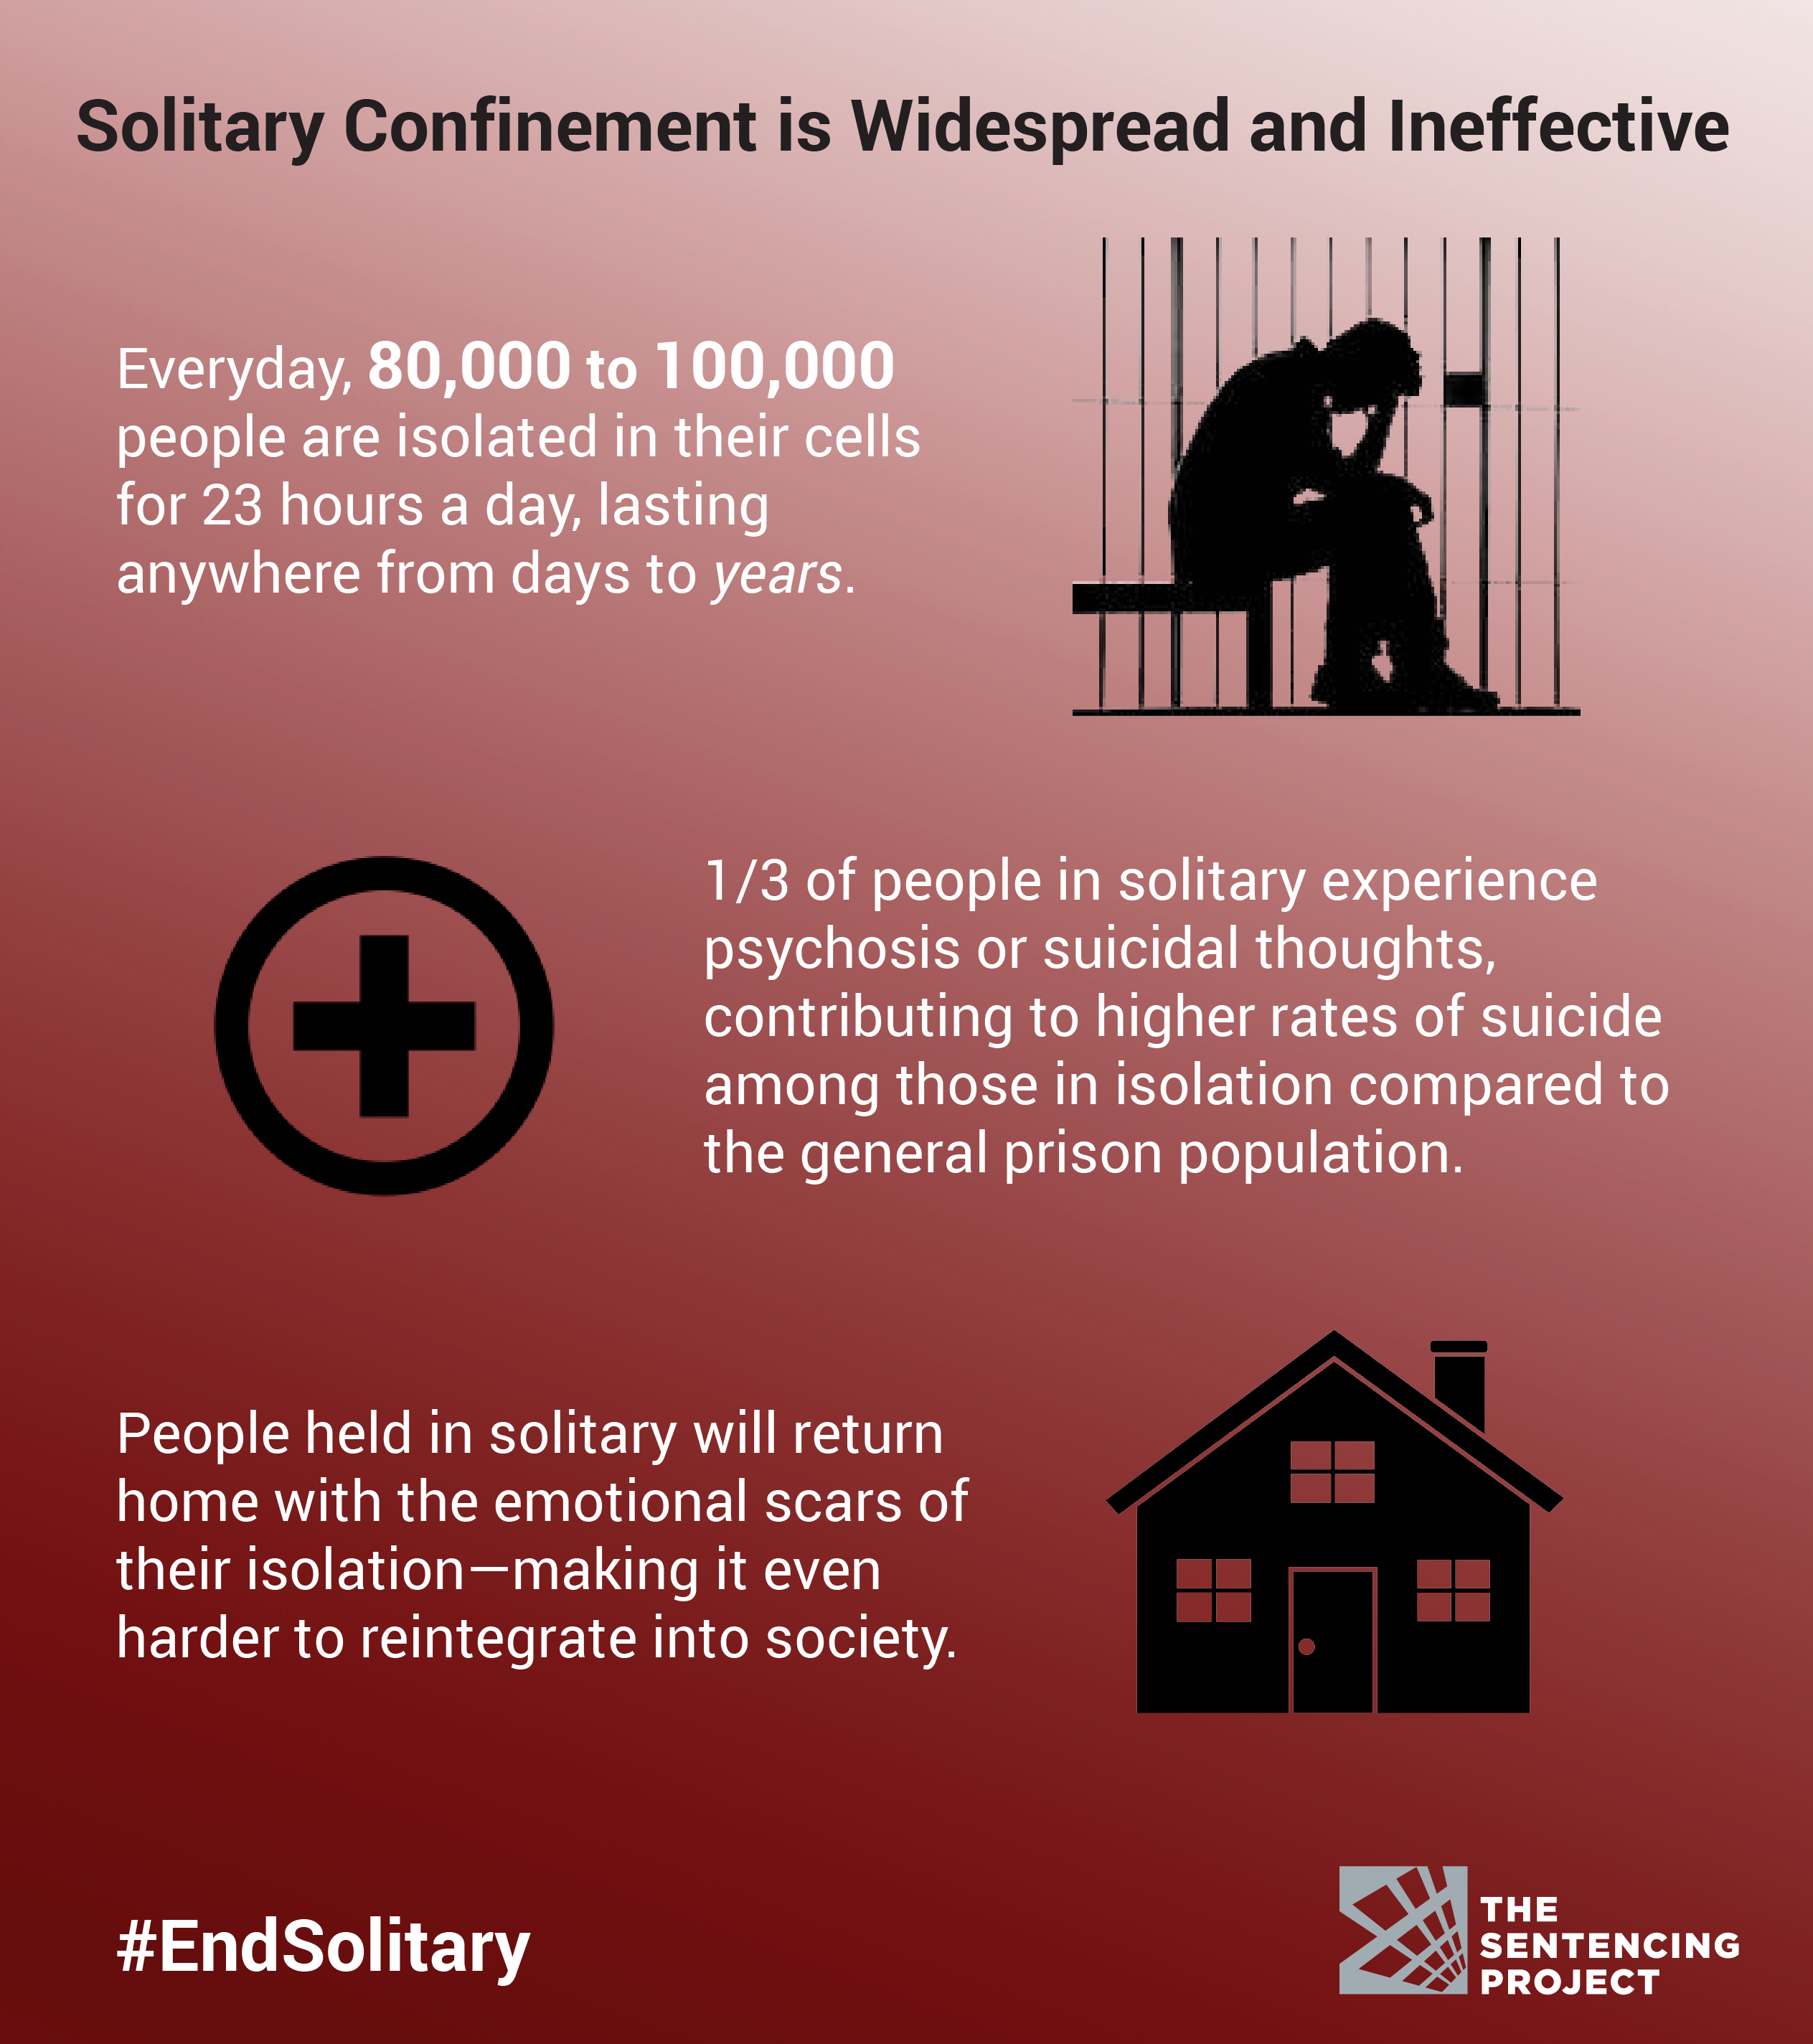 Solitary confinement is widespread and ineffective | The